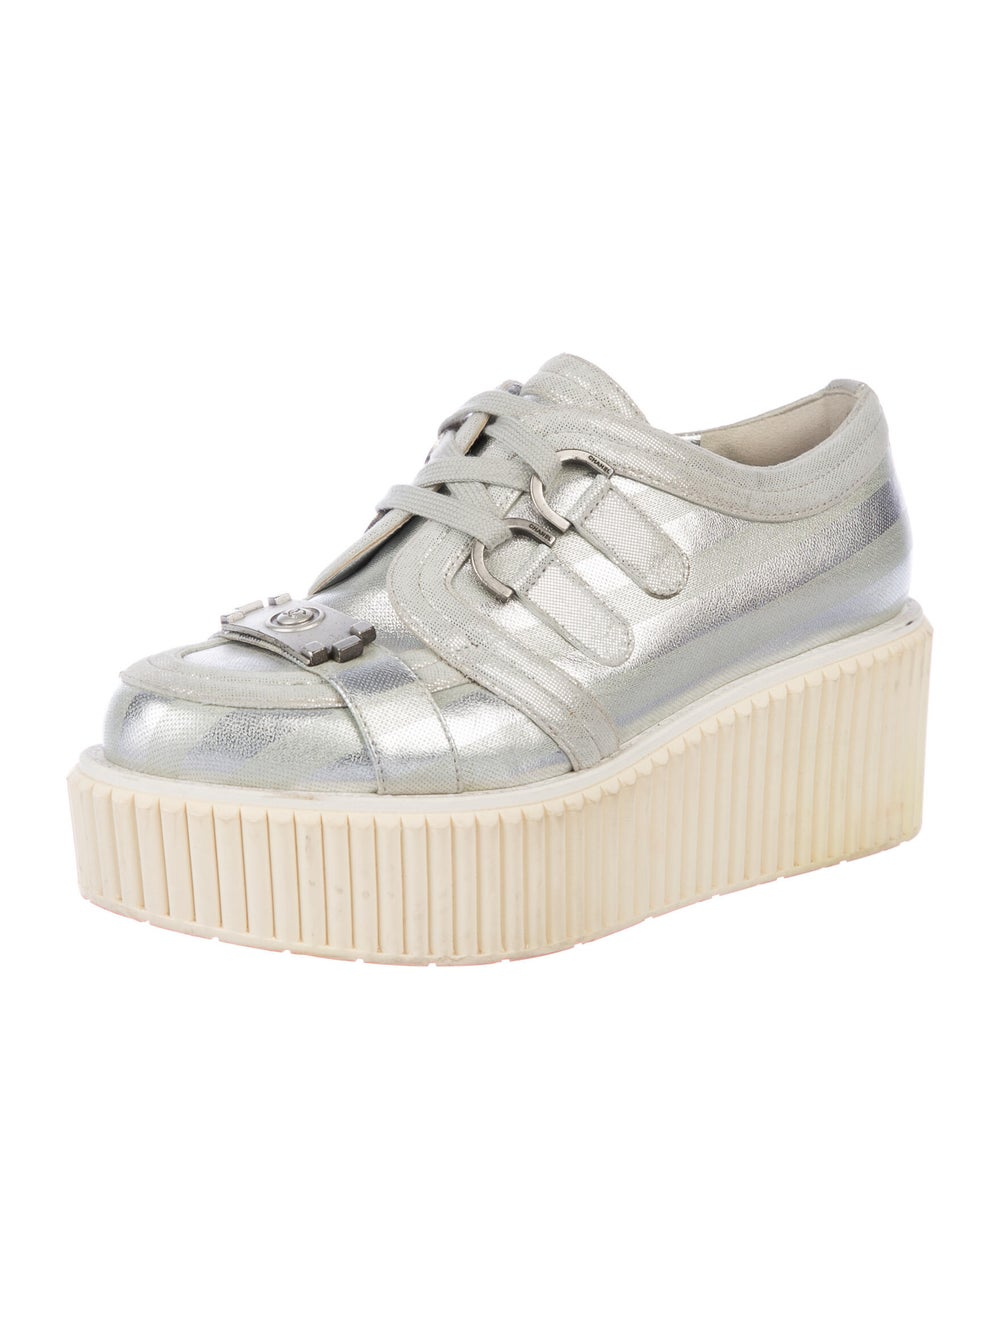 Chanel Lamé Boy Creepers Wedge Sneakers Silver - image 2